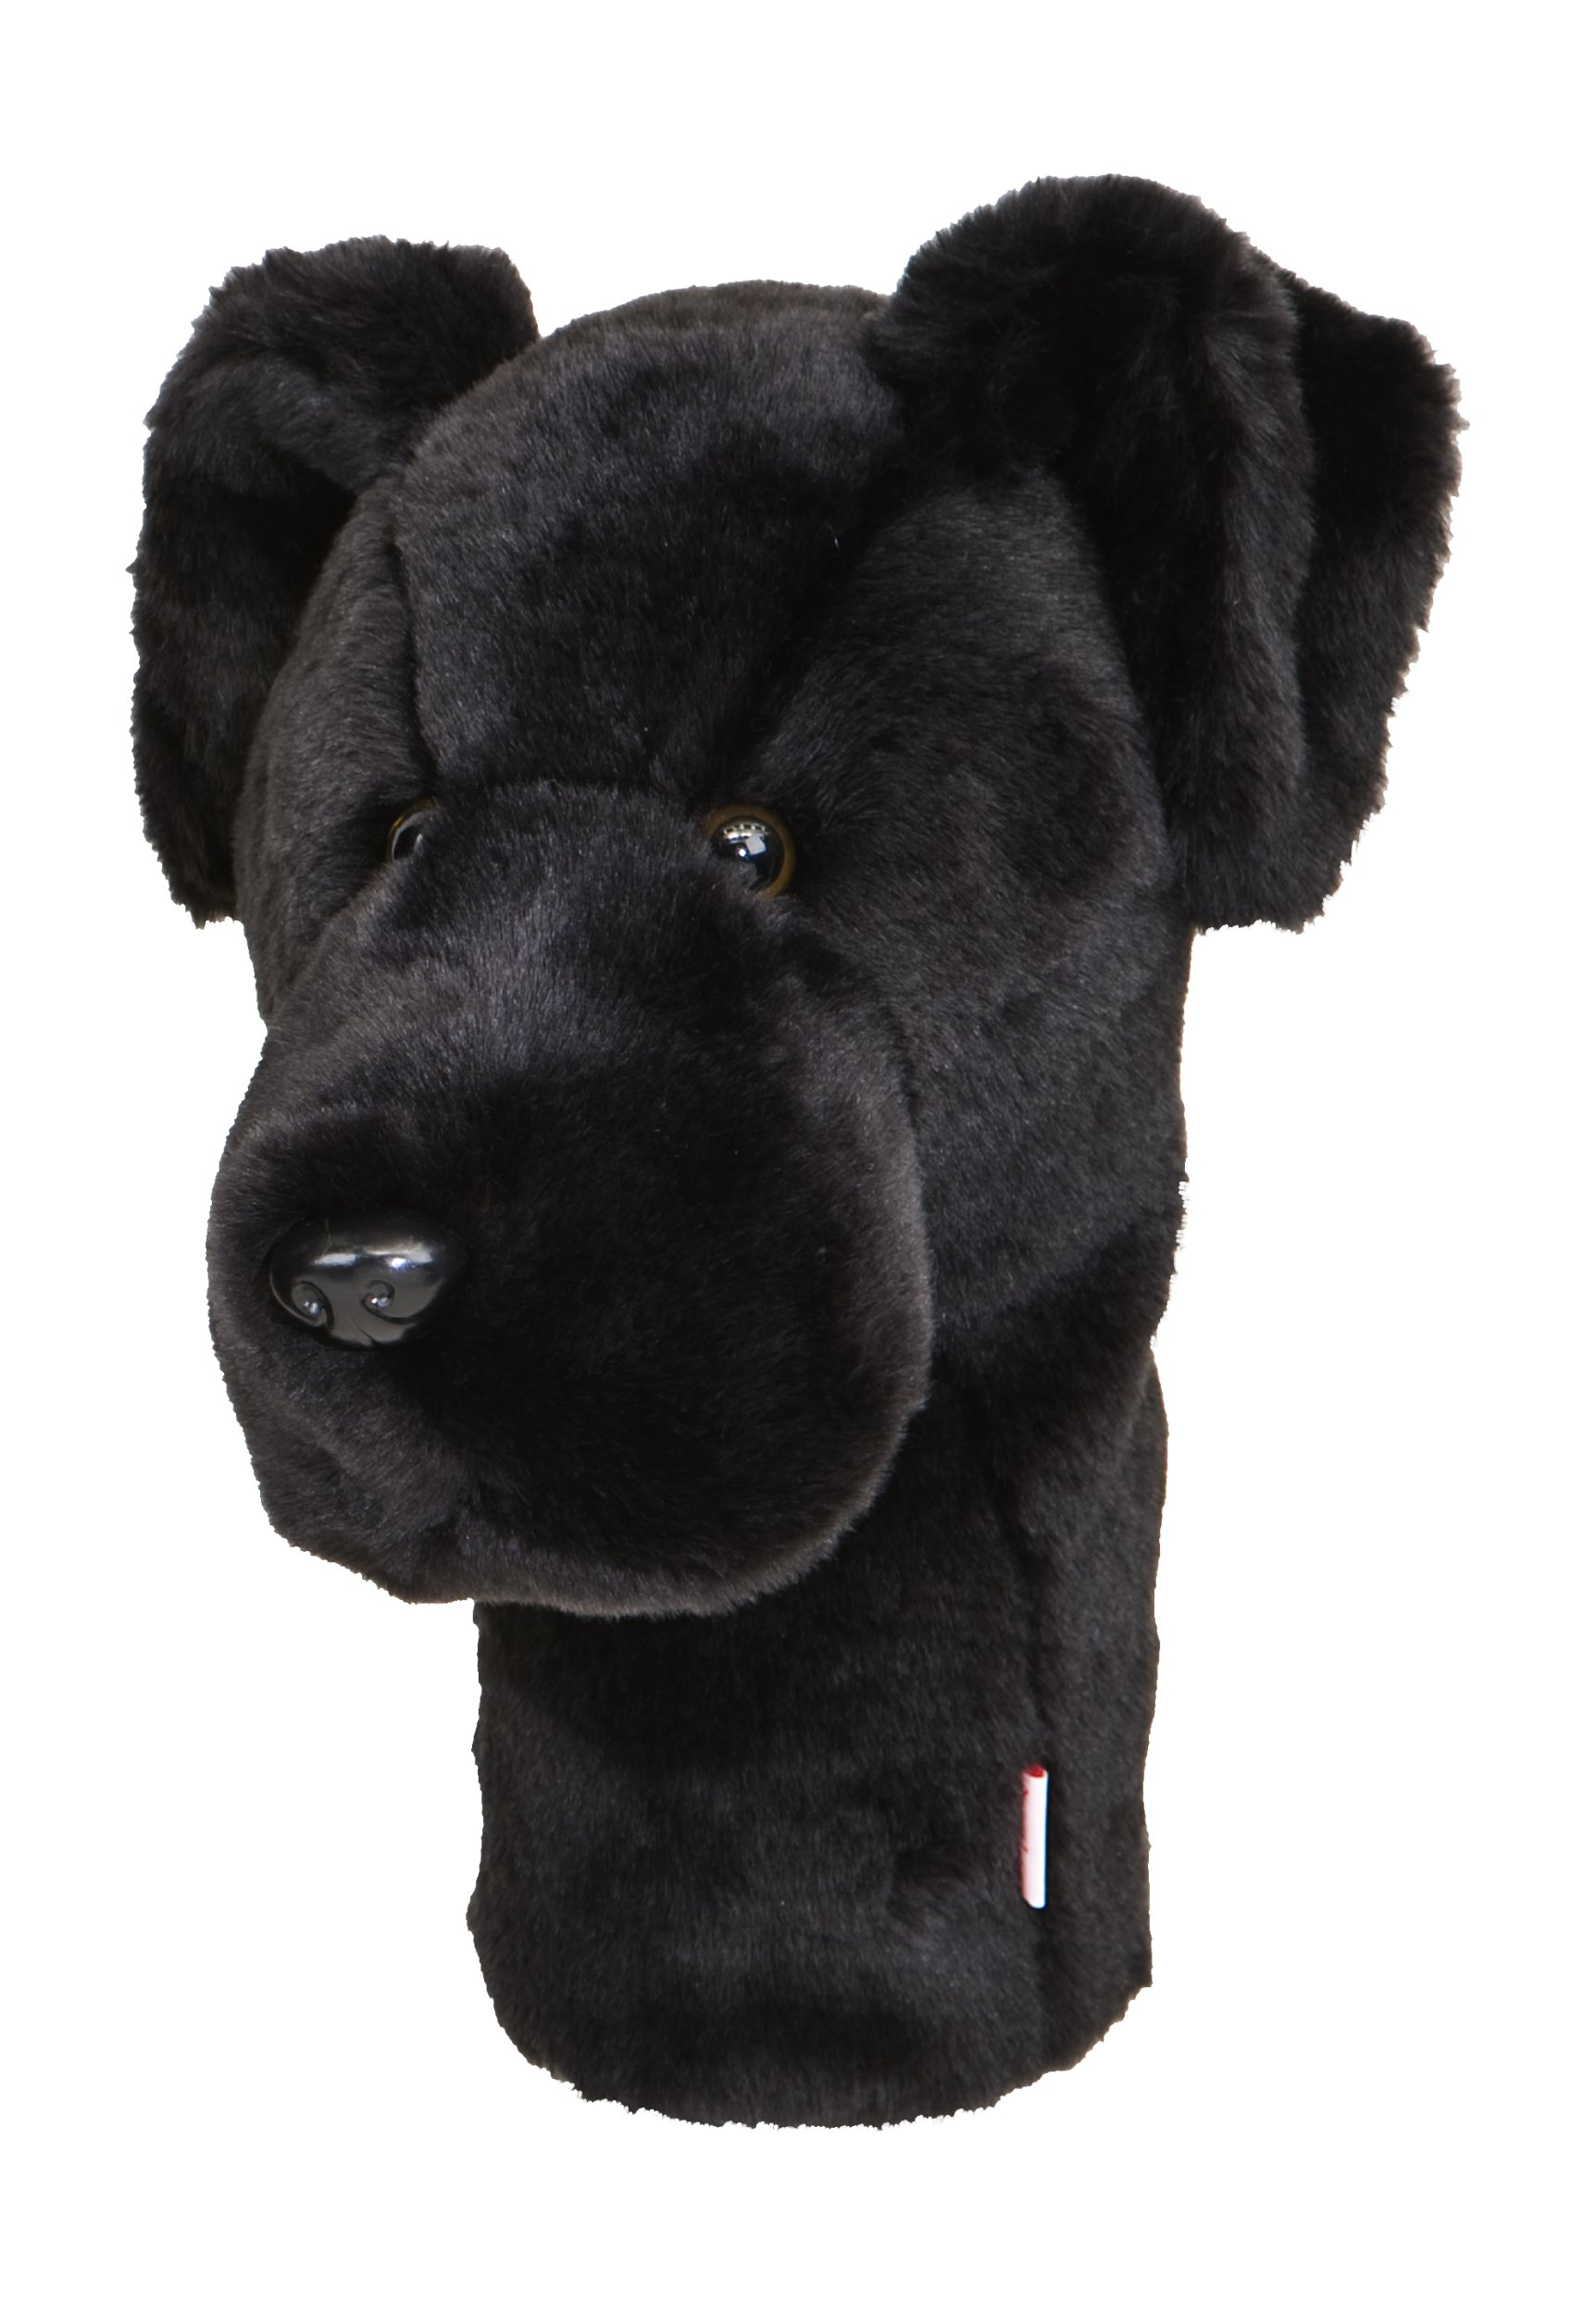 Daphne's Black Lab Headcovers by Daphne's Headcovers